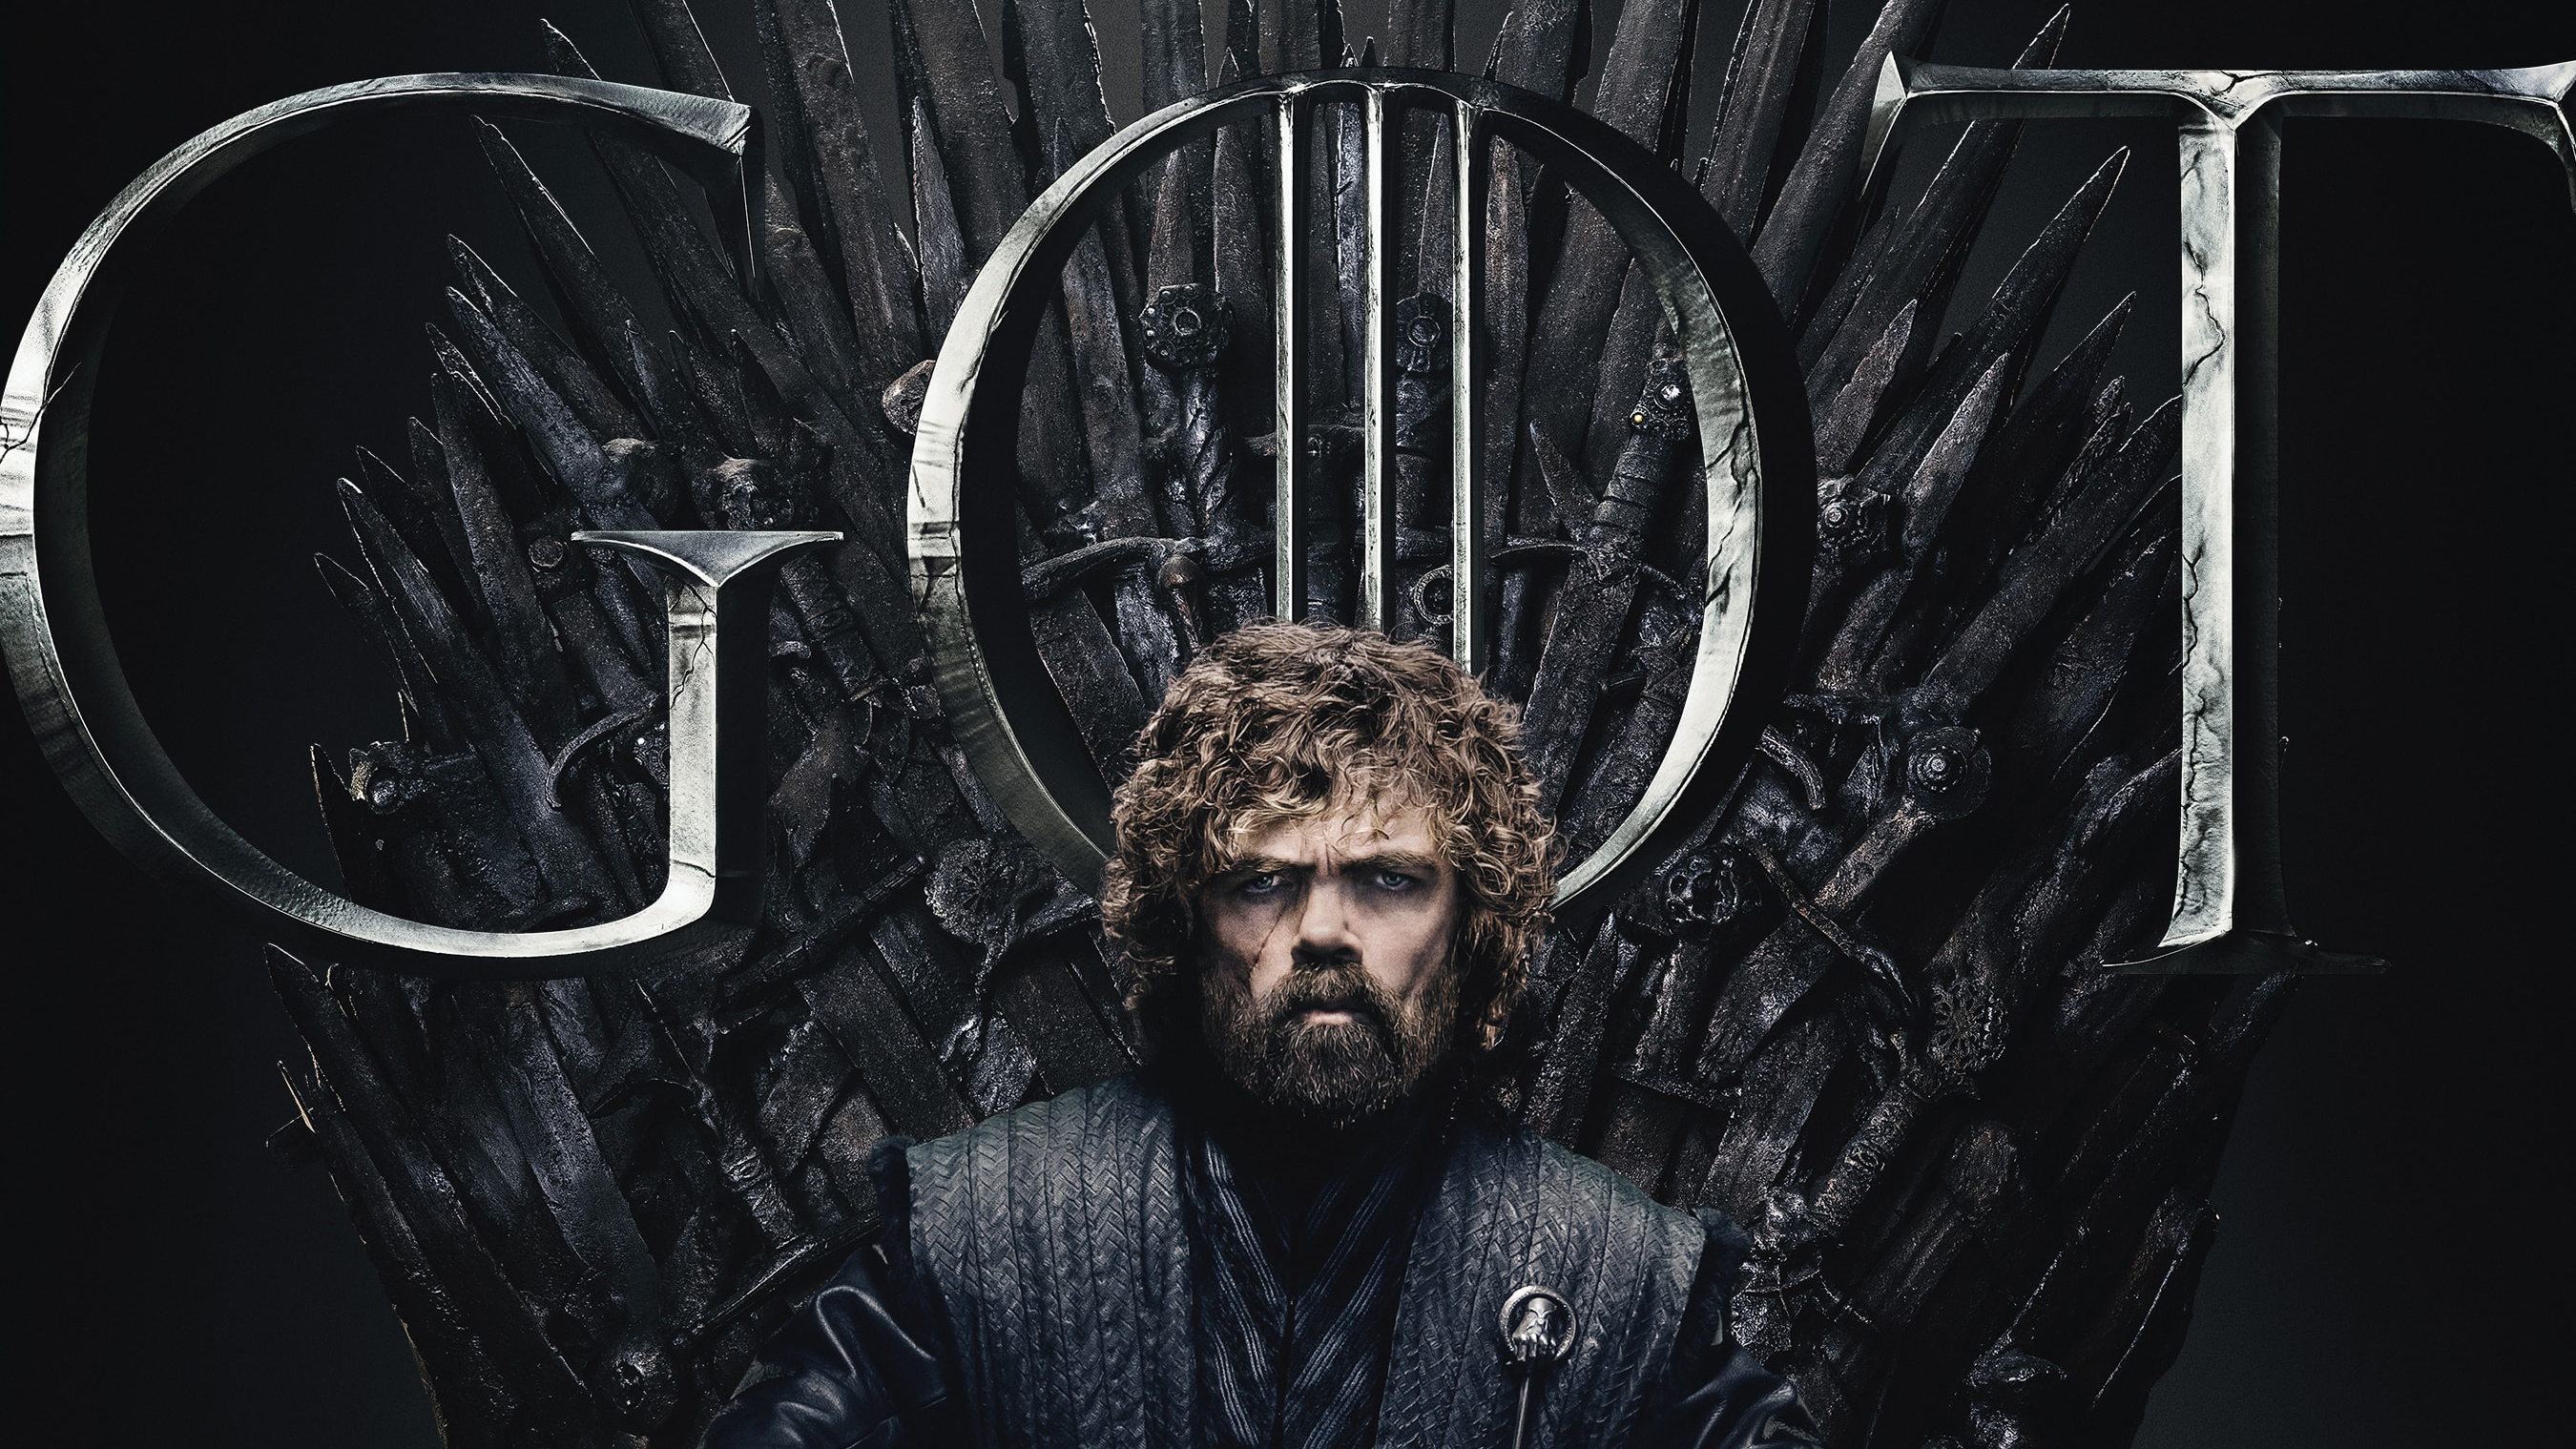 Tyrion Lannister Game Of Thrones Season 8 Poster Hd Tv Shows 4k